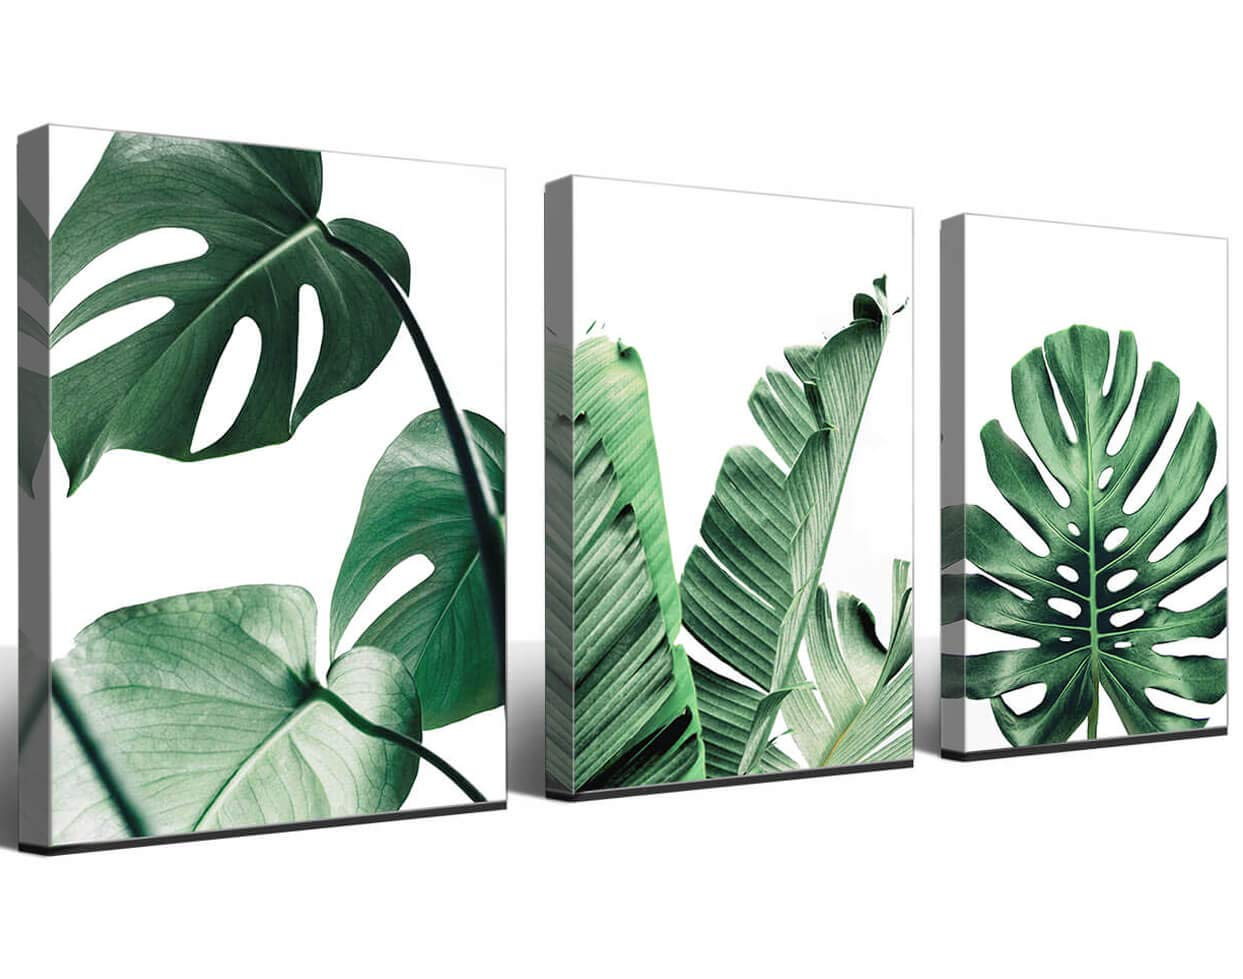 Canvas Wall Art Green Leaf Simple Life Painting Dathroom Wall Decor Monstera Plant 3 Pieces Framed Canvas Pictures Contemporary Watercolor Artwork Ready to Hang for Home Decoration Office Wall Decor by Meilaili Art